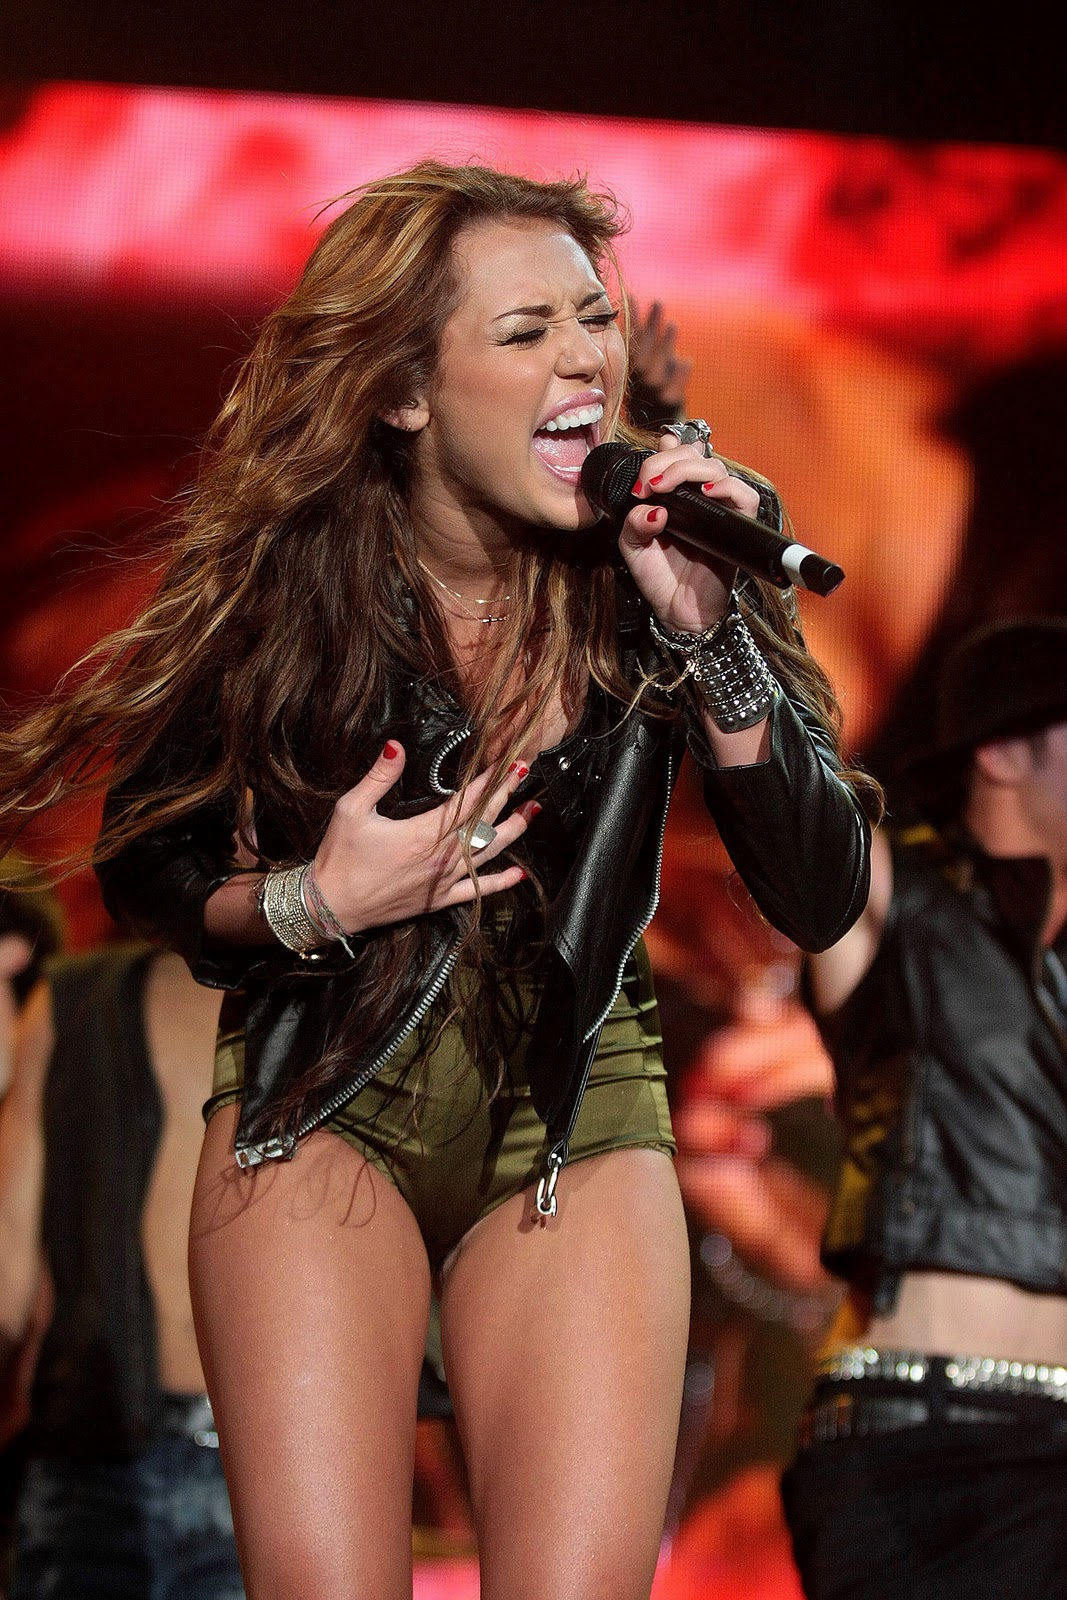 Miley Cyrus Live In Concert  Miley Cyrus News  Love Life -9482